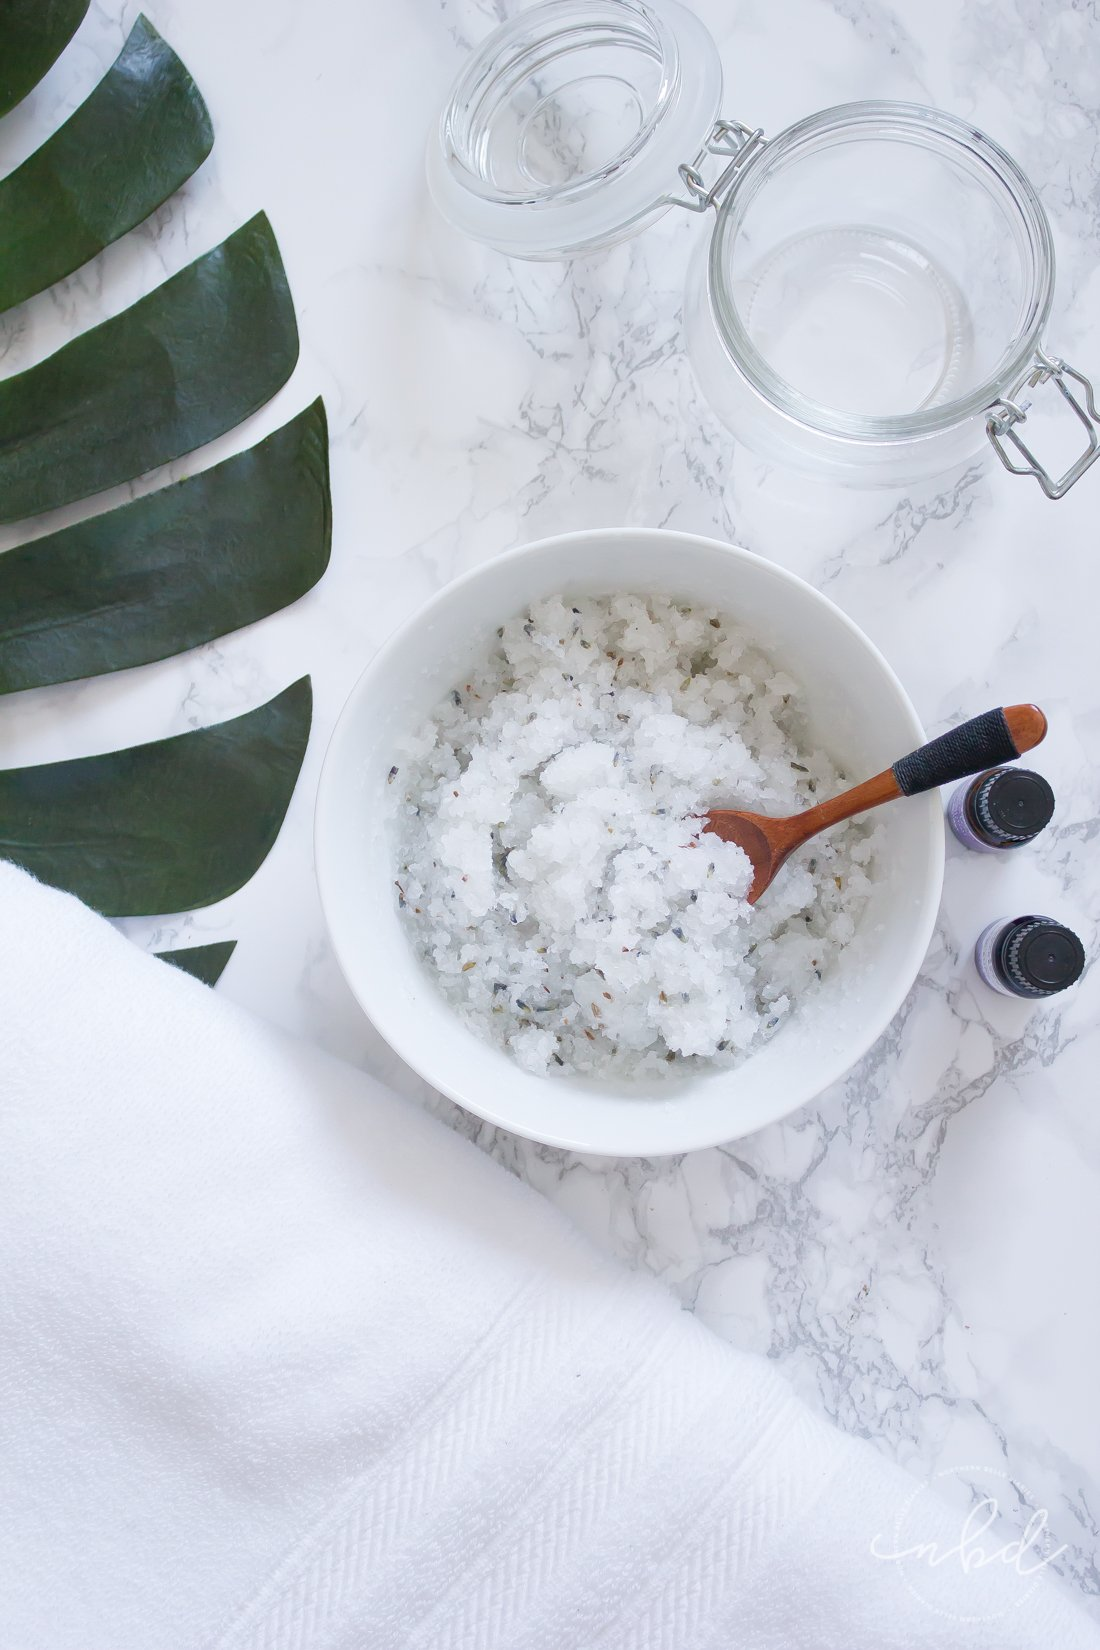 How to Create a Relaxing Spa Experience at Home